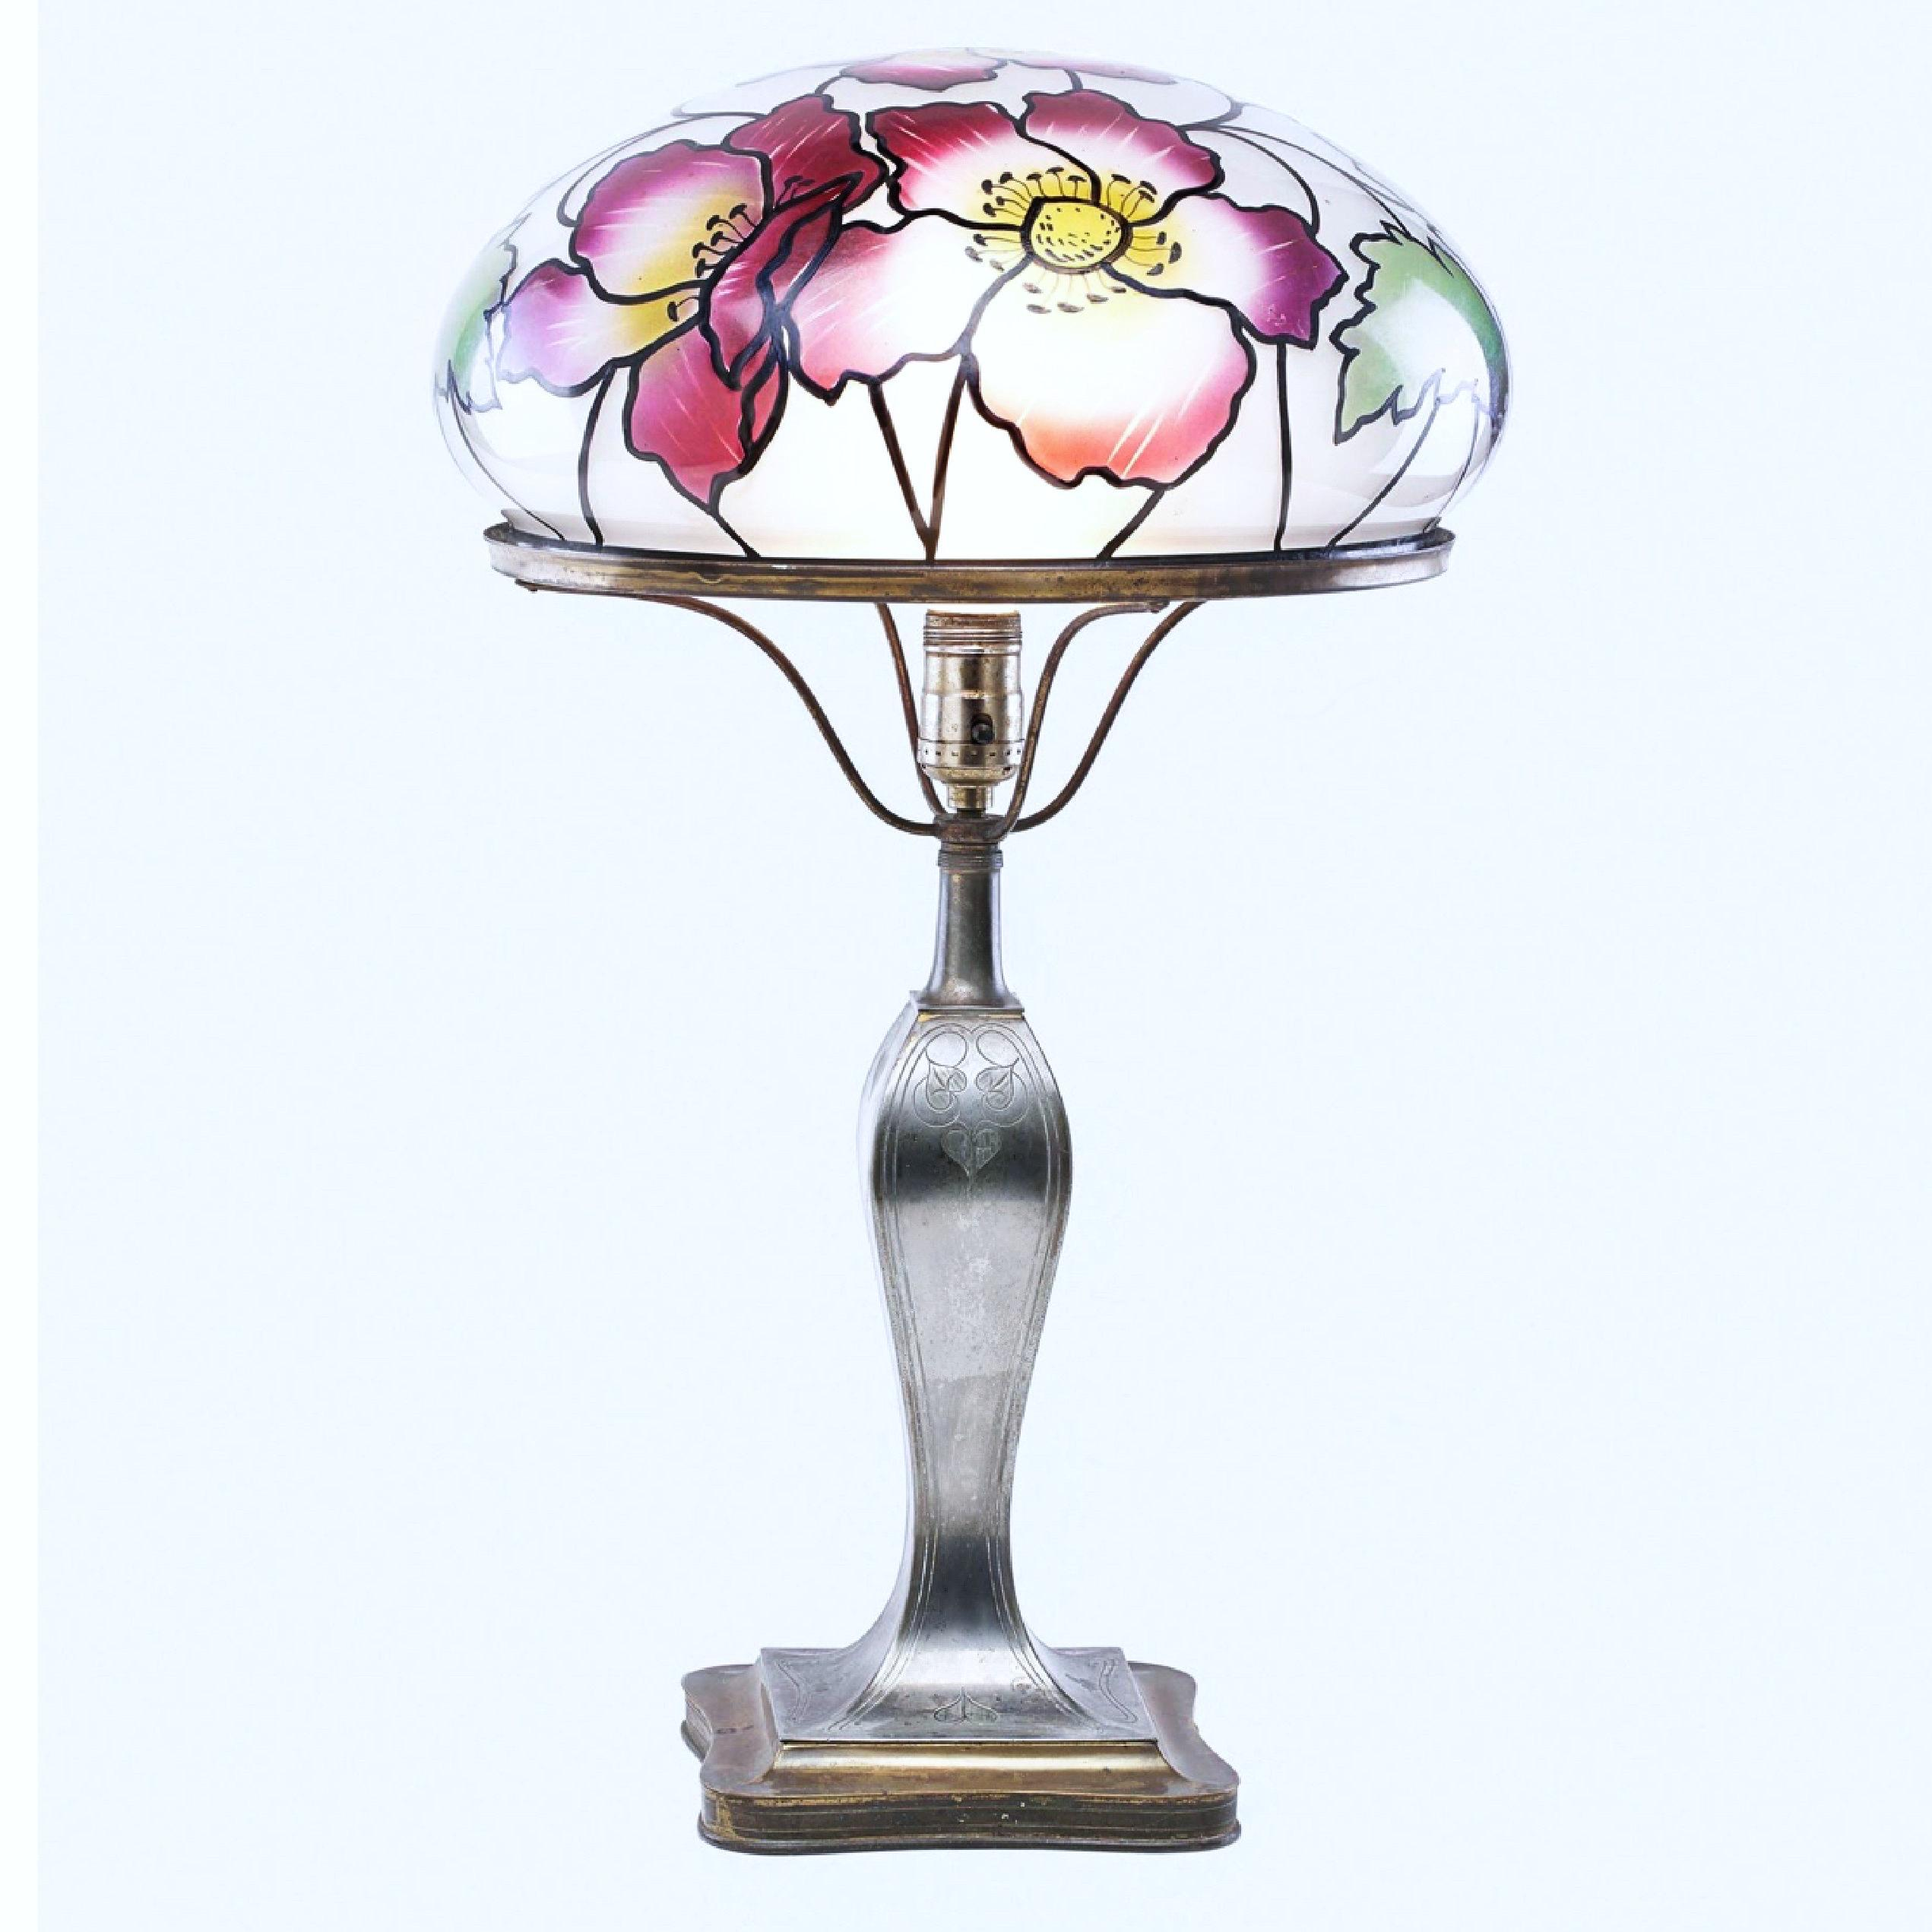 Pairpoint Glass Co Poppy Flower Stained Glass Table Lamp Vienna Shade 1920 For Sale At 1stdibs